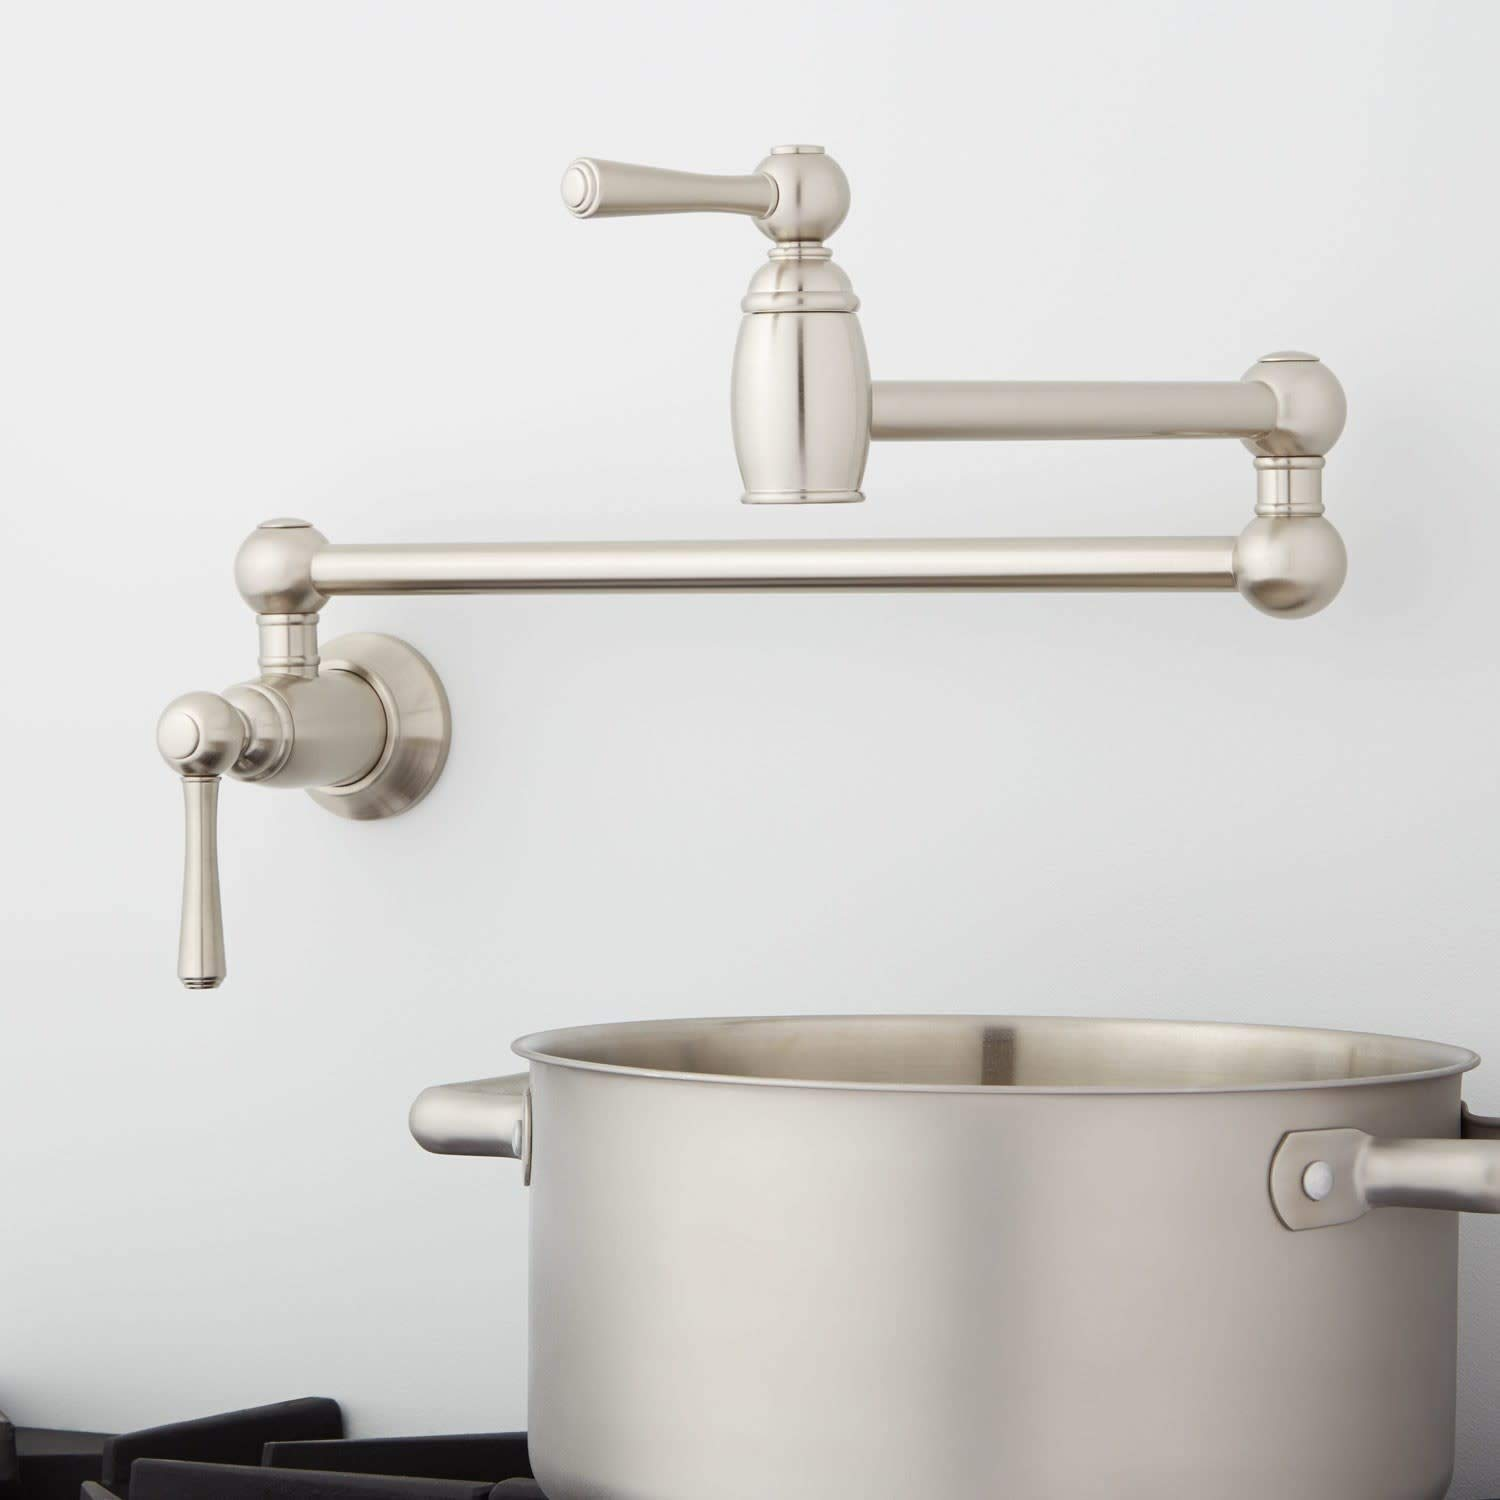 Signature Hardware 426926 Poncia 2.5 GPM Double Handle Wall Mounted Pot Filler